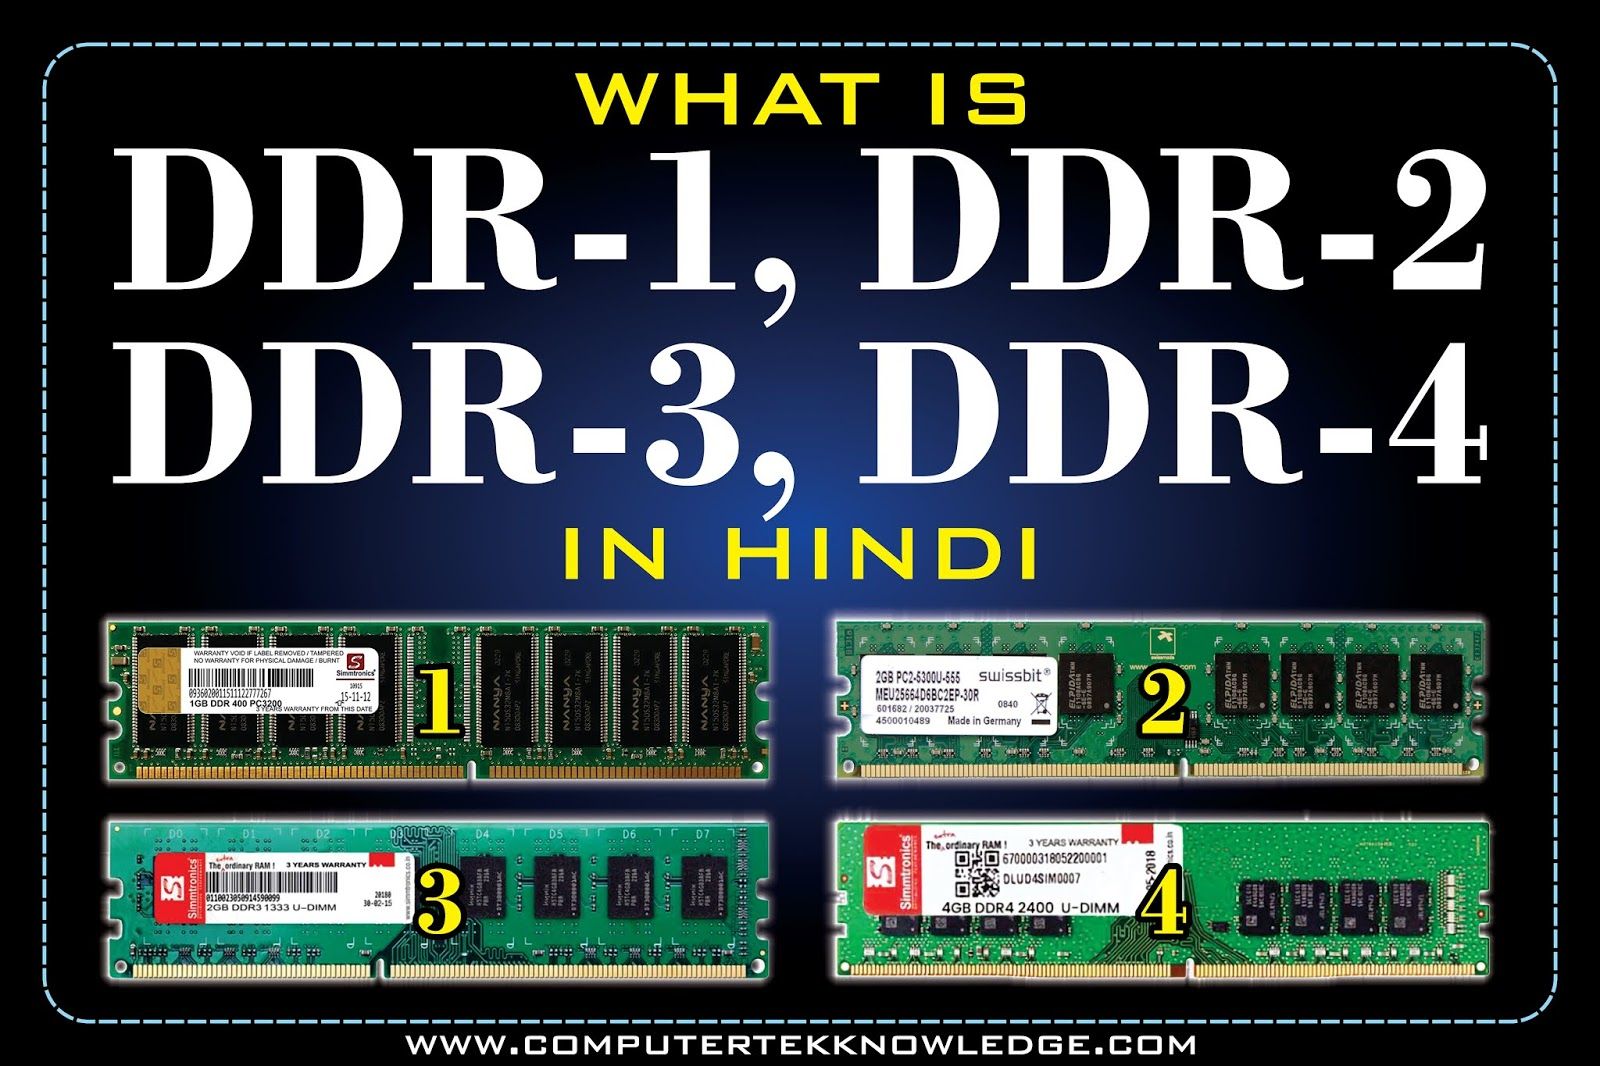 ddr1 ddr2 ddr3 ddr4 in hindi